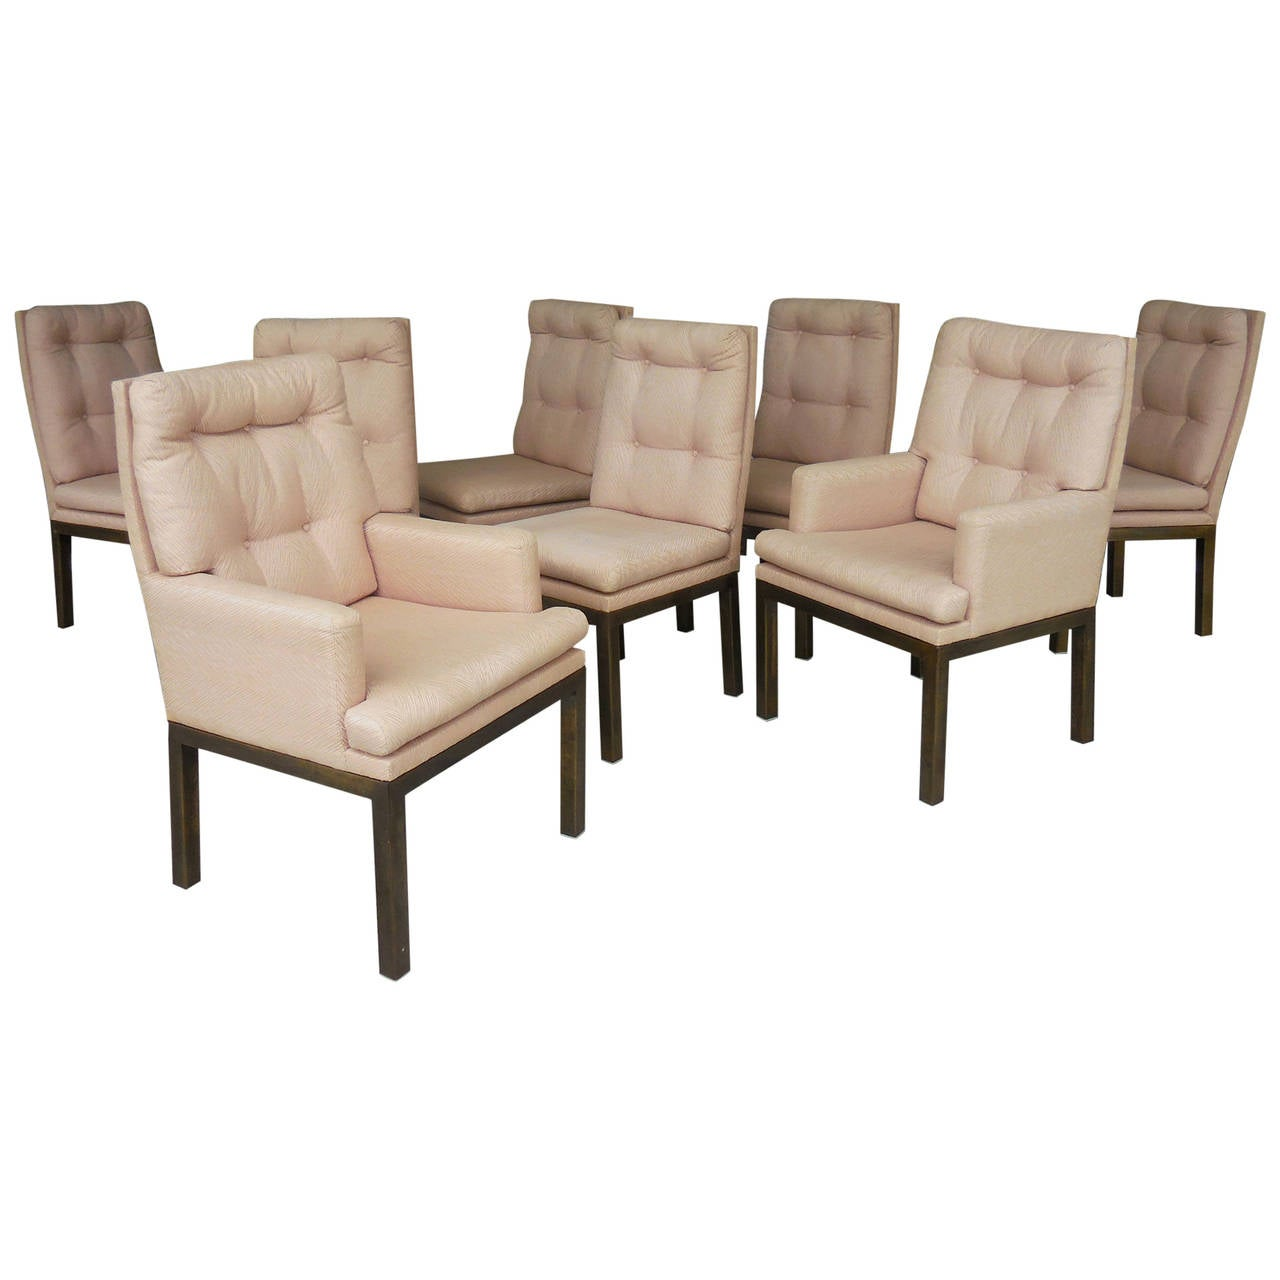 8 Bronze Dining Chairs By Mastercraft At 1stdibs